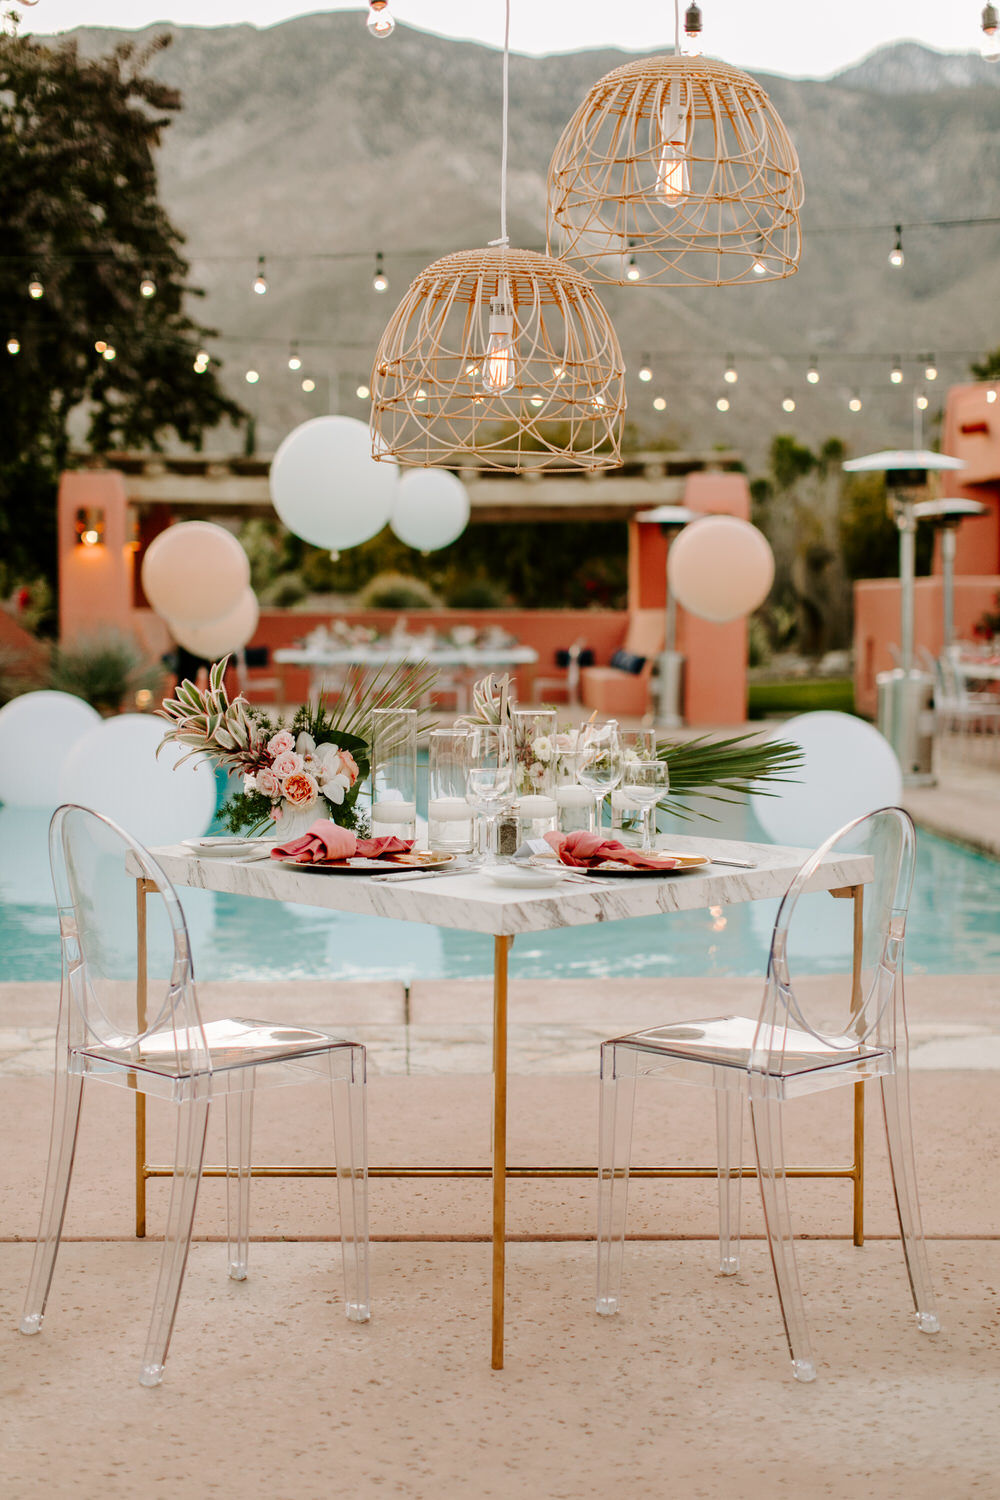 sweetheart table with ghost chairs, marble table and pink tropical accents